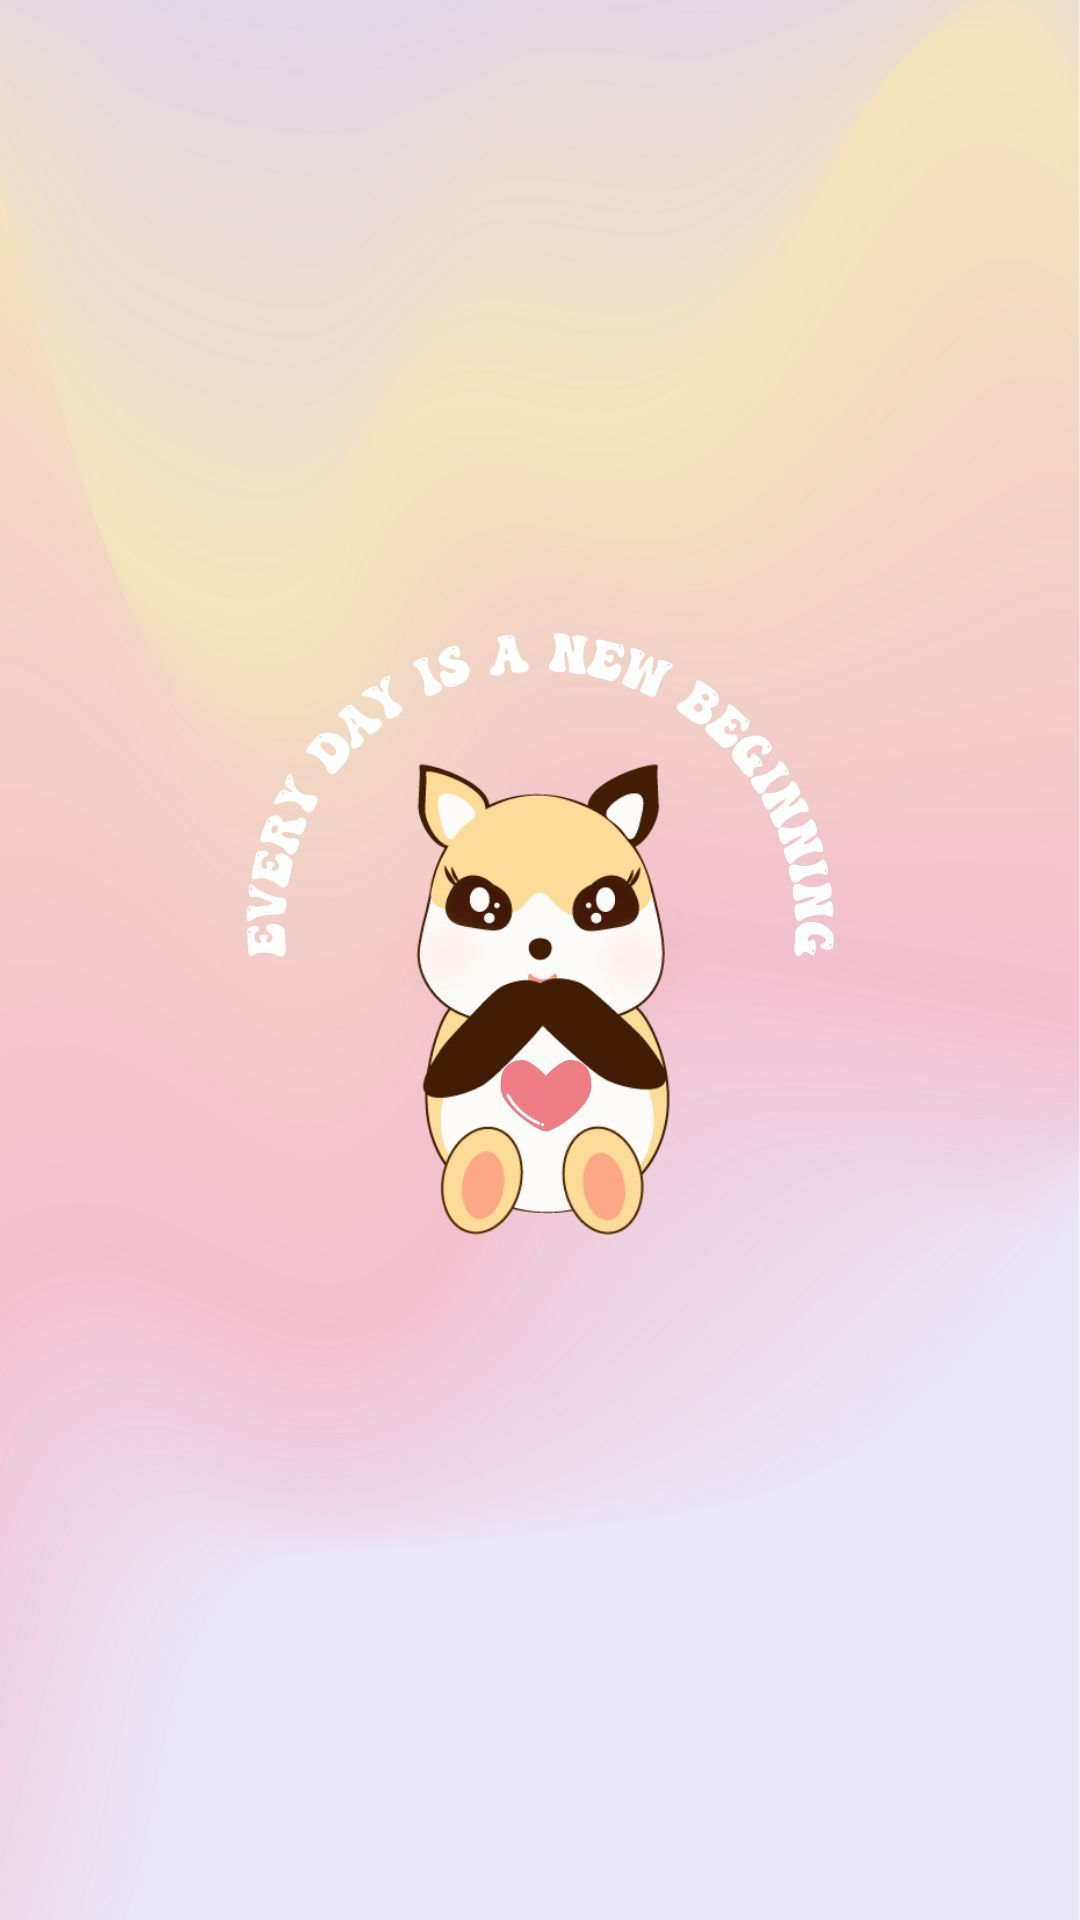 Every Day Is A New Day Positive Quotes Wallpaper In 2021 Kawaii Wallpaper Phone Wallpaper Design Cute Wallpapers